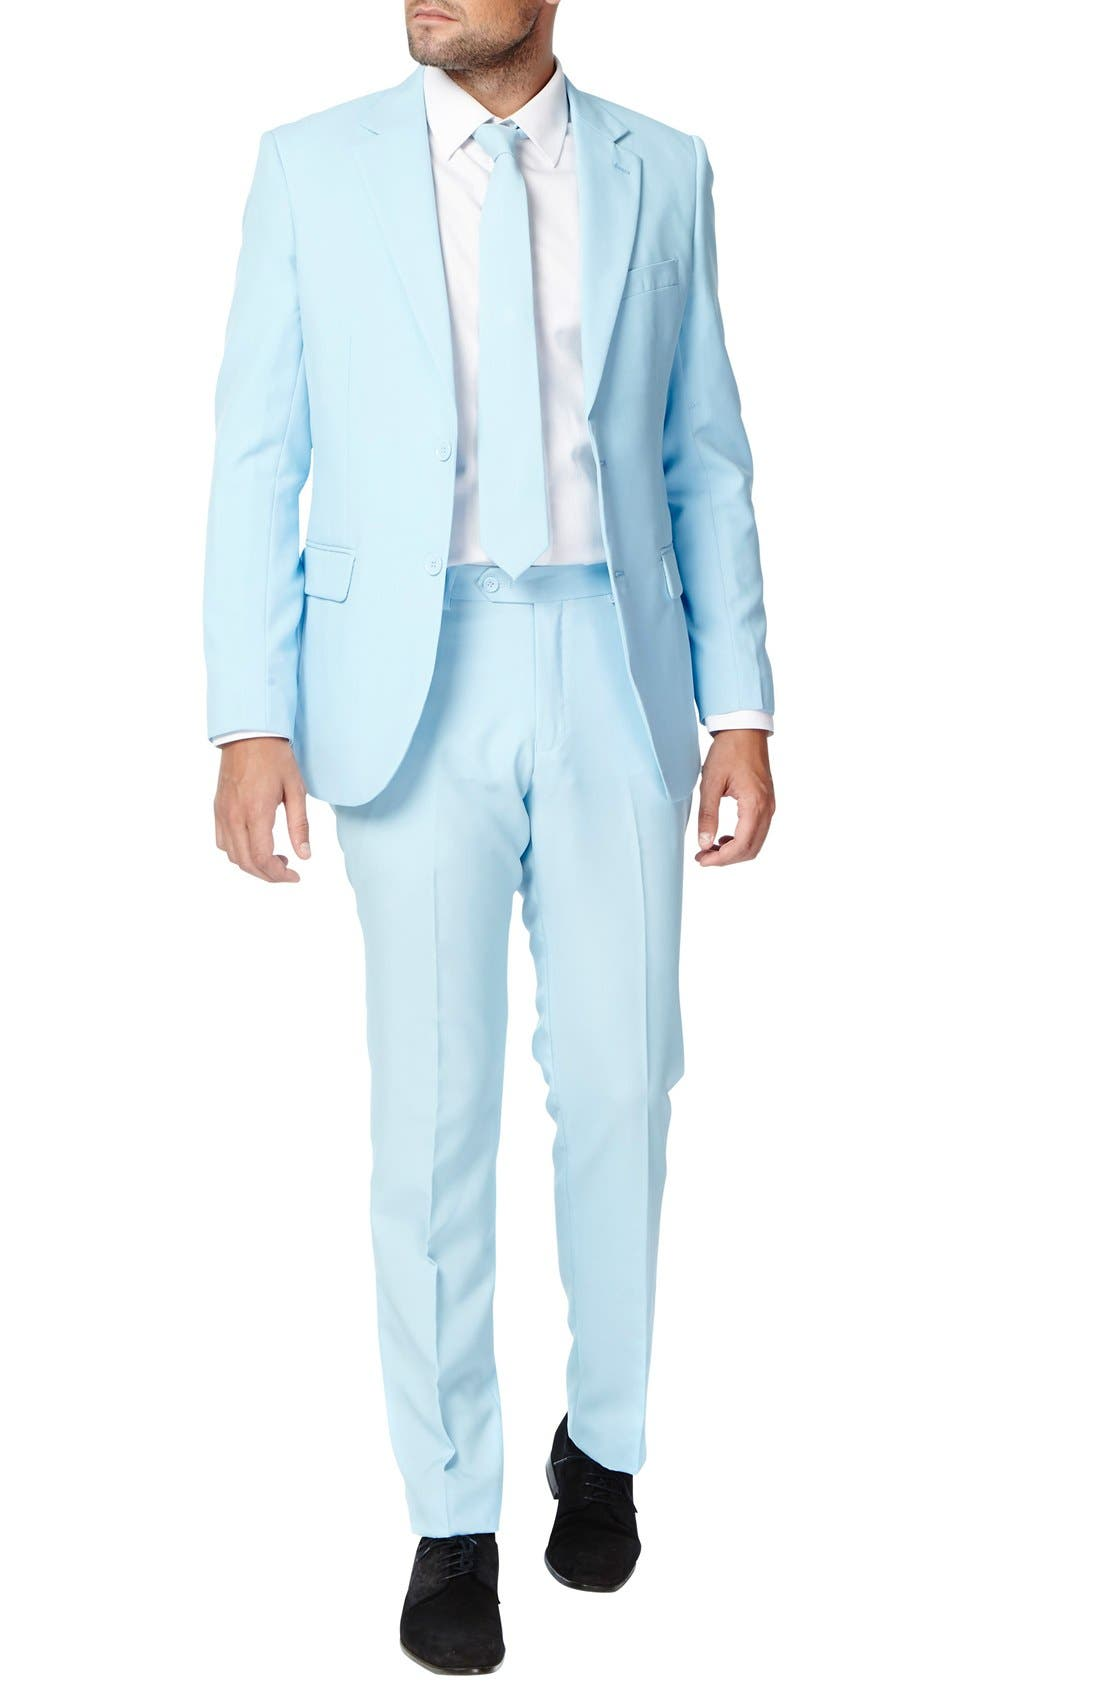 OPPOSUITS 'Cool Blue' Trim Fit Two-Piece Suit with